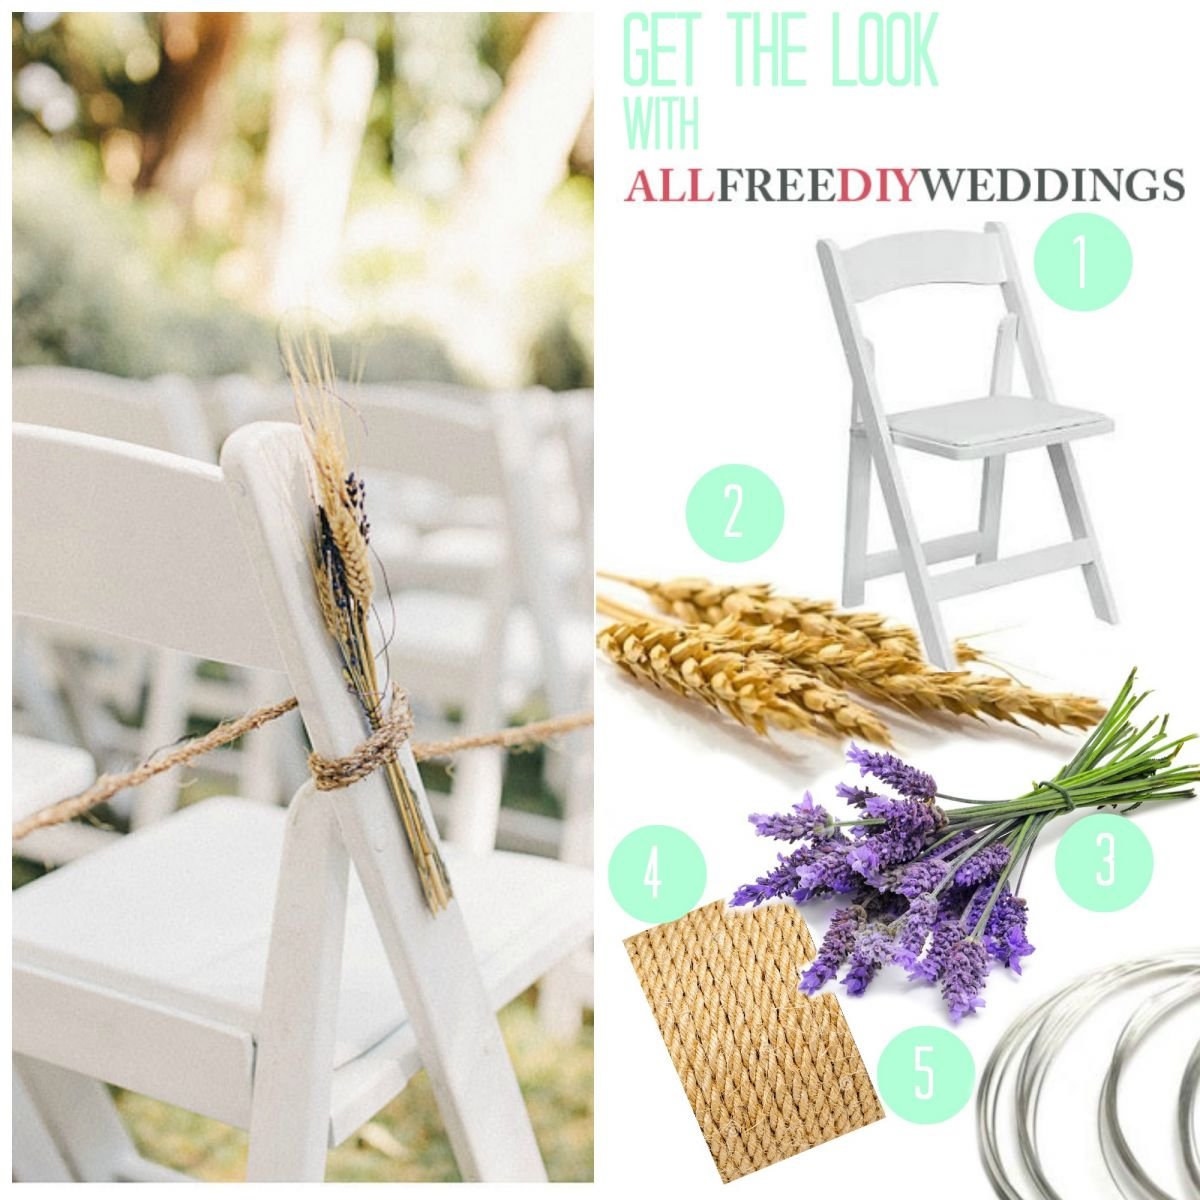 Lavender and Wheat Wedding Aisle Decorations AllFreeDIYWeddingscom